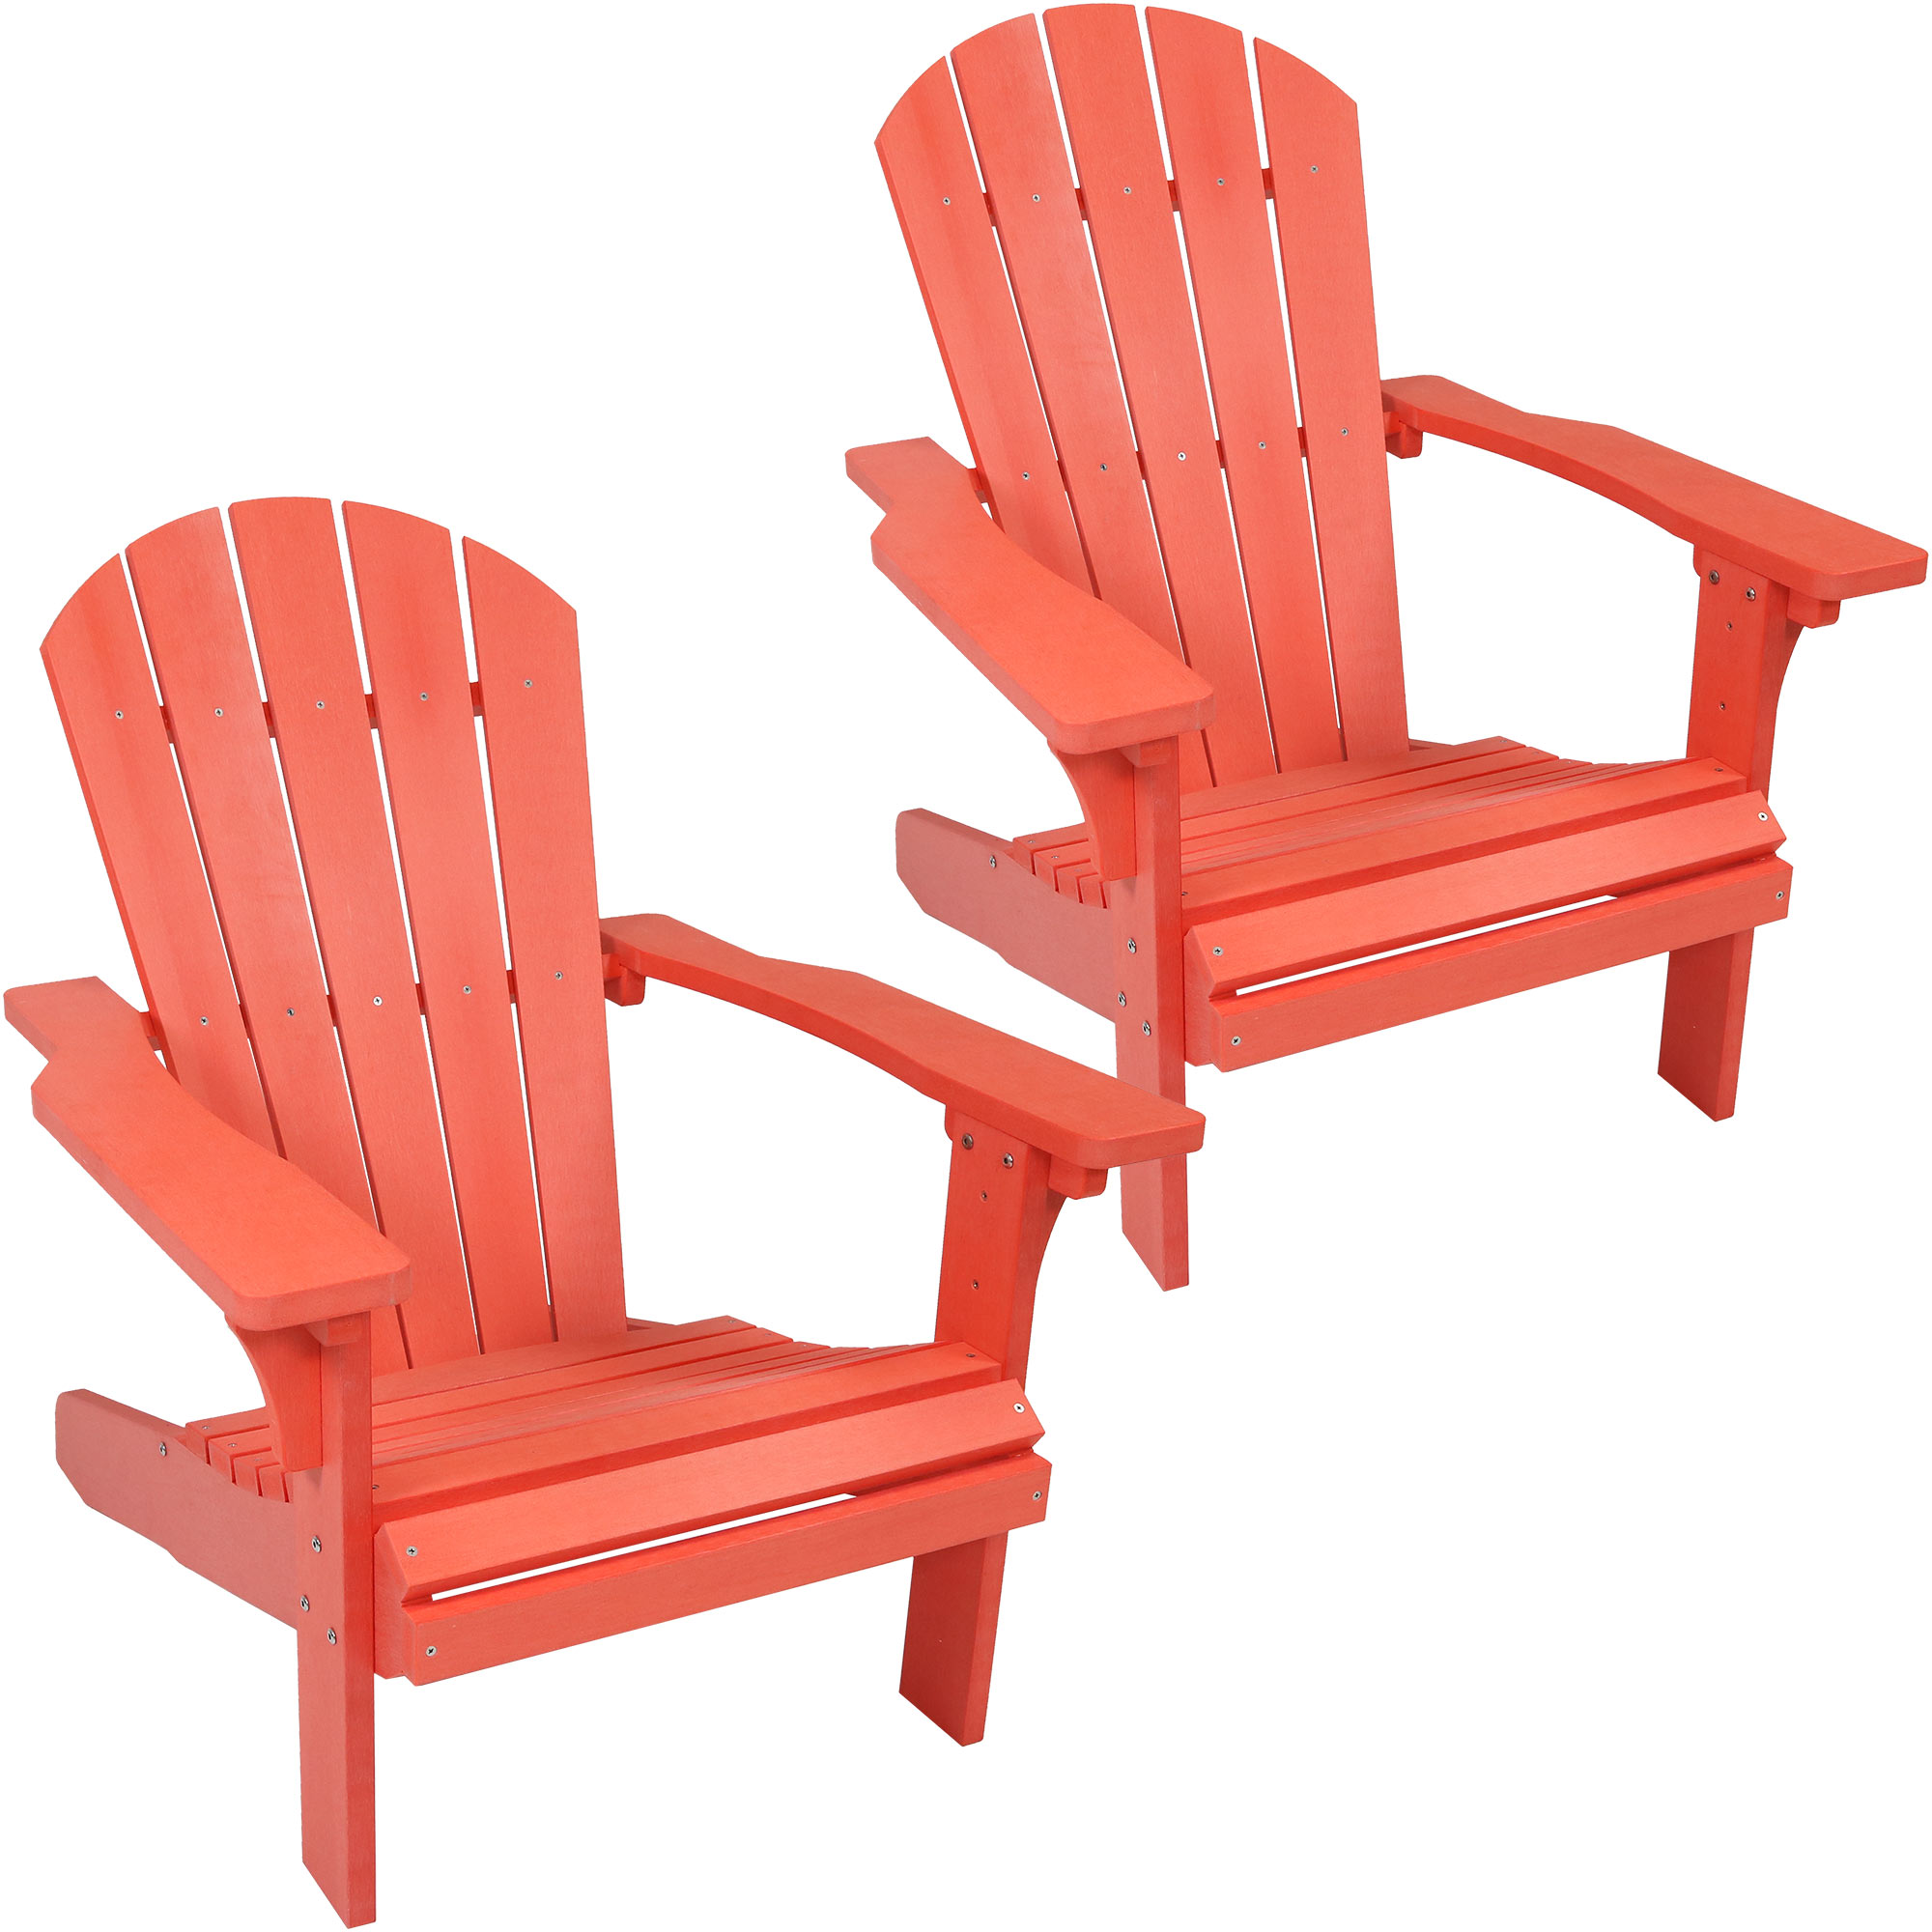 Adirondack Patio Chair Faux Wood Salmon Photo